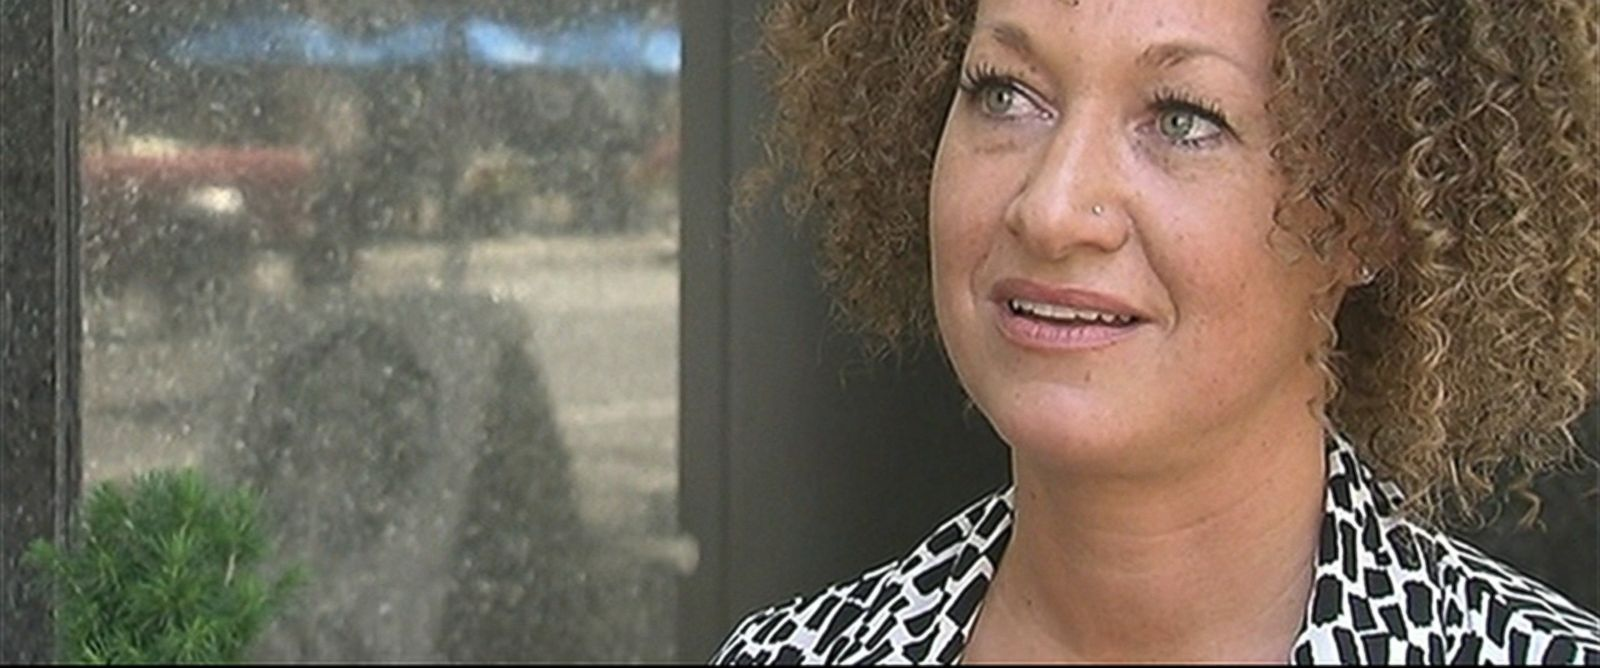 PHOTO: Rachel Dolezal, a Spokane, Washington civil rights advocate, appears in an interview with ABC affiliate KXLY, June 10, 2015.